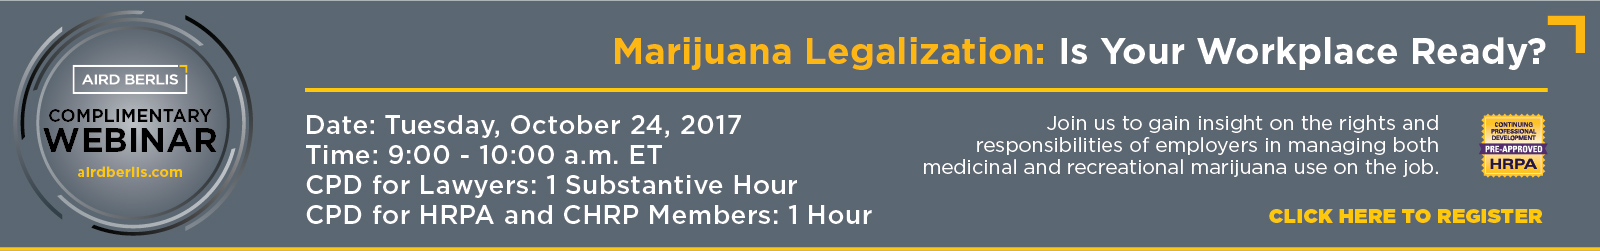 Marijuana Legalization Is Your Workplace Ready Growing Your Cannabusiness